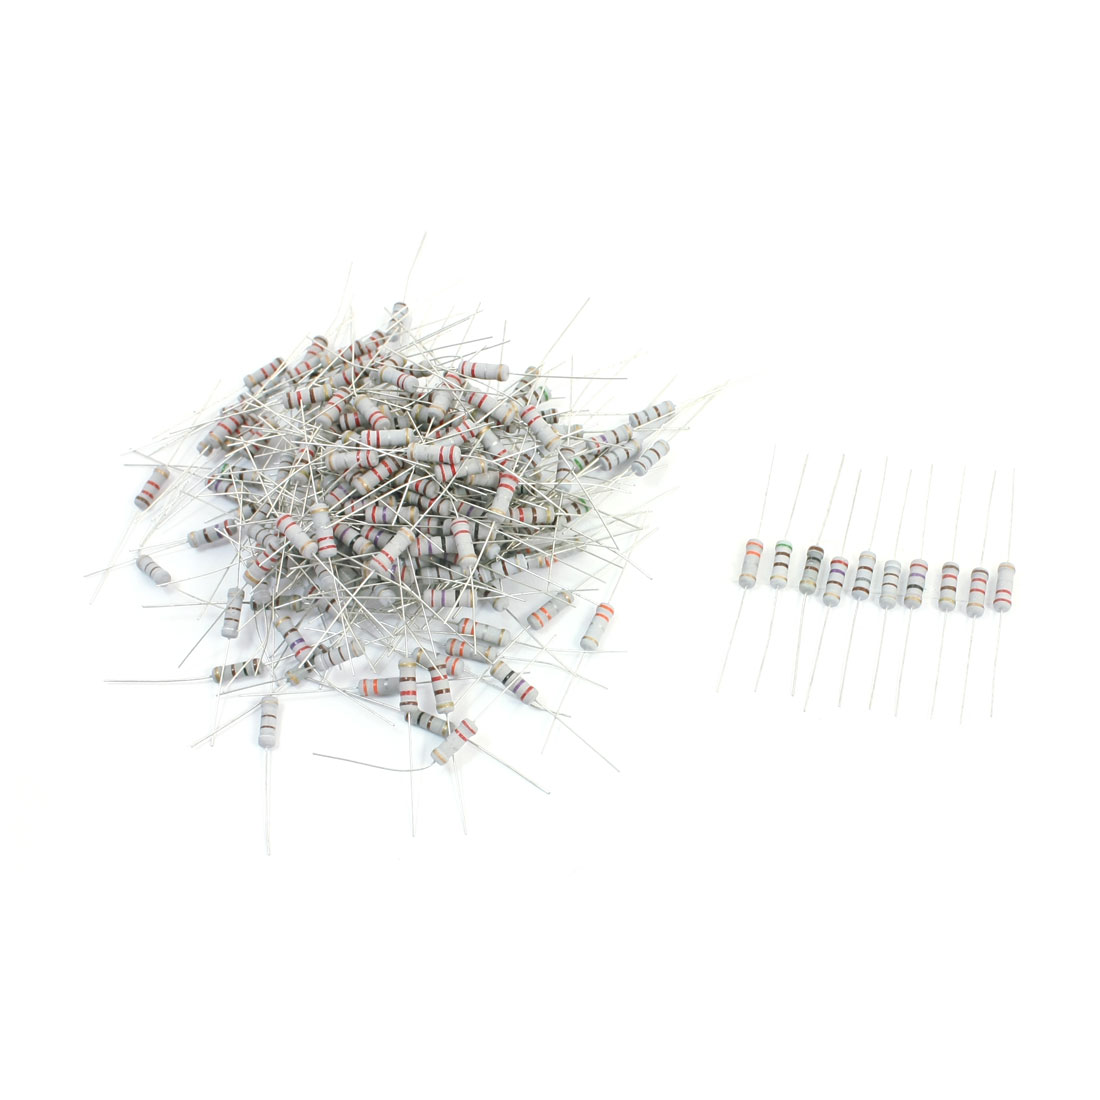 200pcs 4 Bands 10 Value Kinds Carbon Film Resistors 0.22-1.2K Ohm 5% 1W